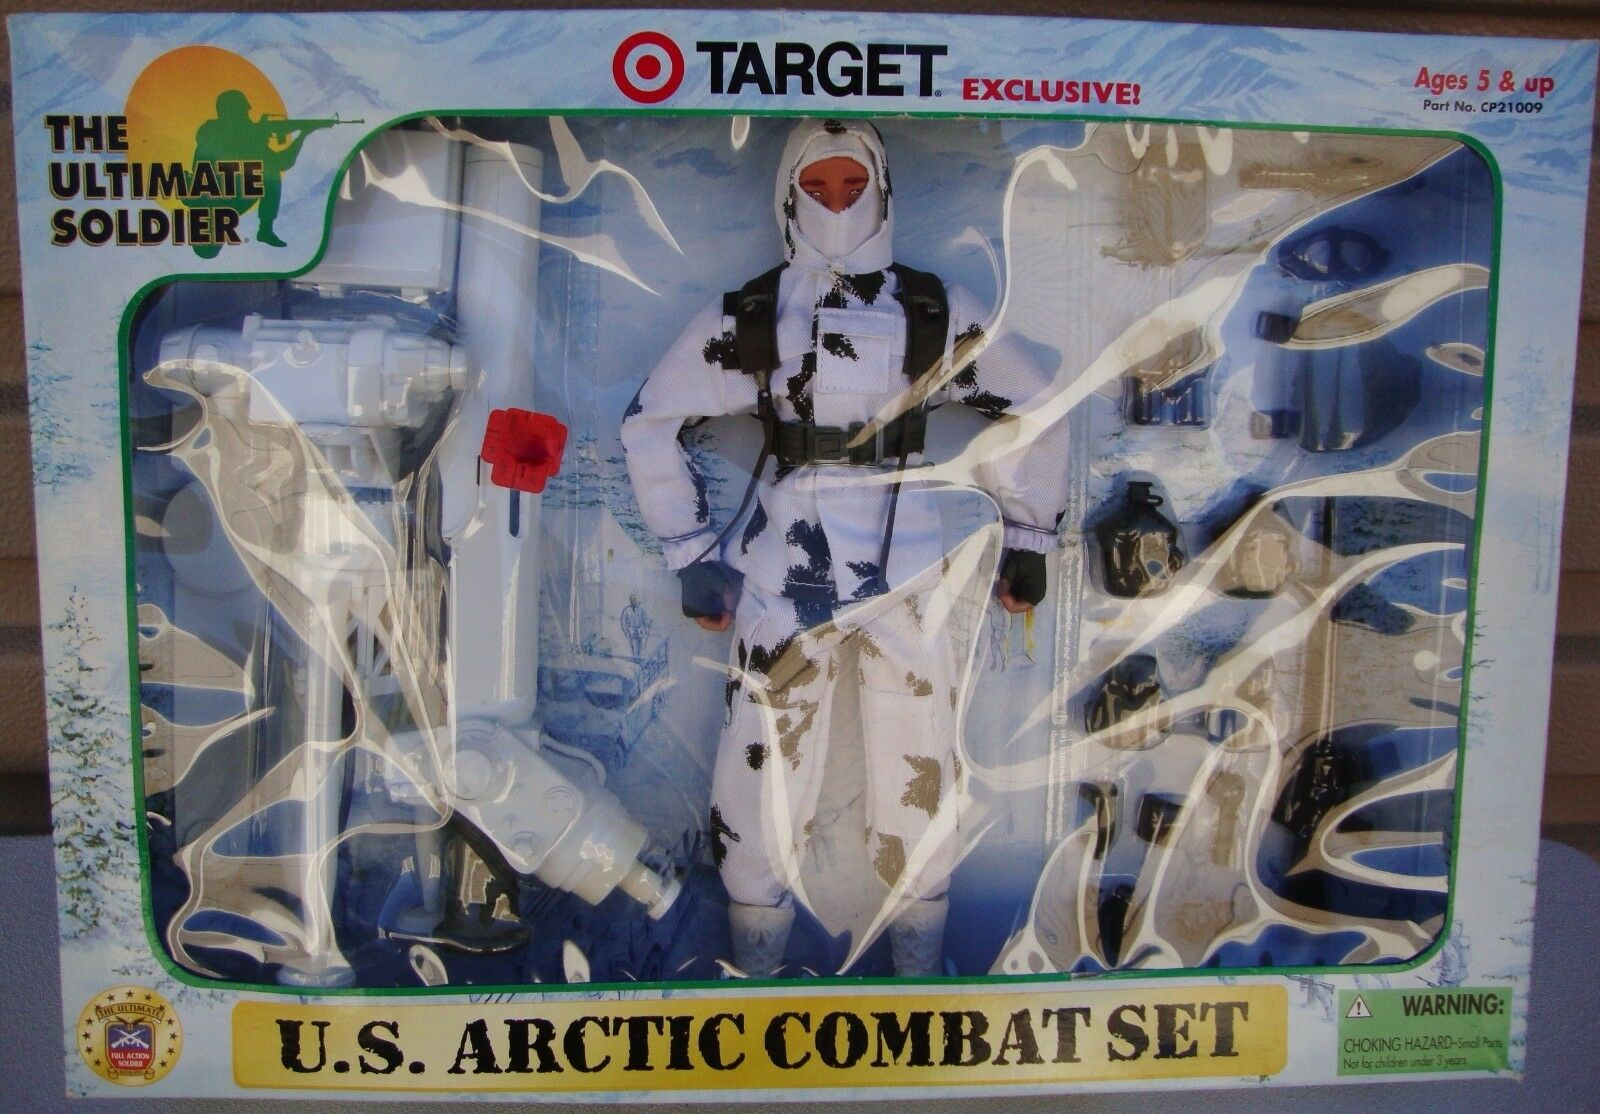 G. I. Joe The Ultimate Soldier U. S. Arctic Combat Set Target Exclusive